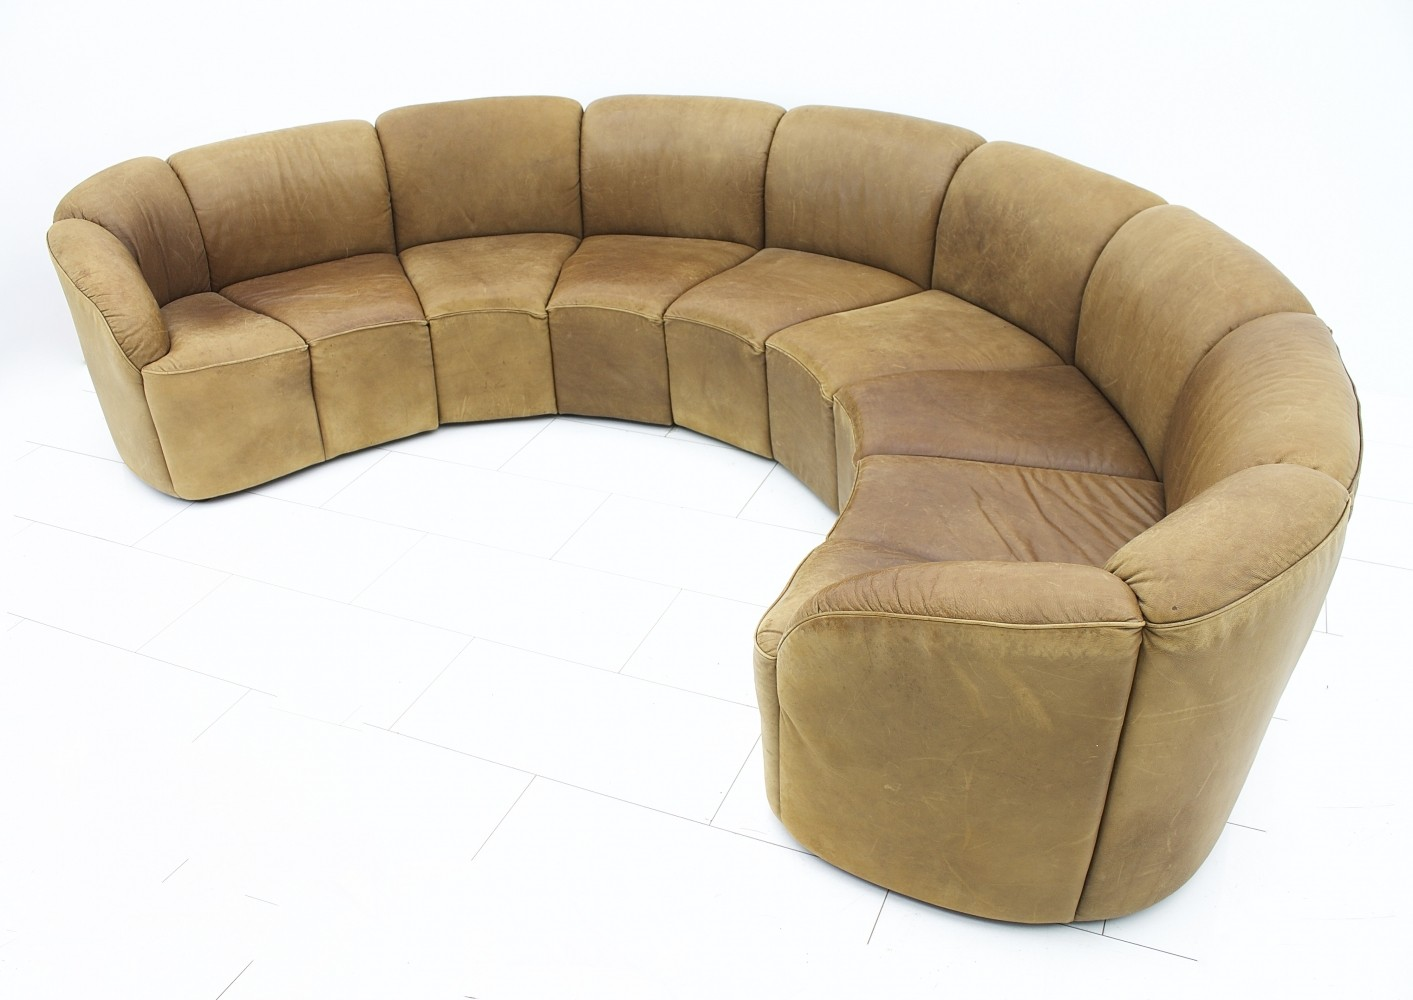 Half round leather sofa by walter knoll late 1960s 58022 Walter knoll circle sofa